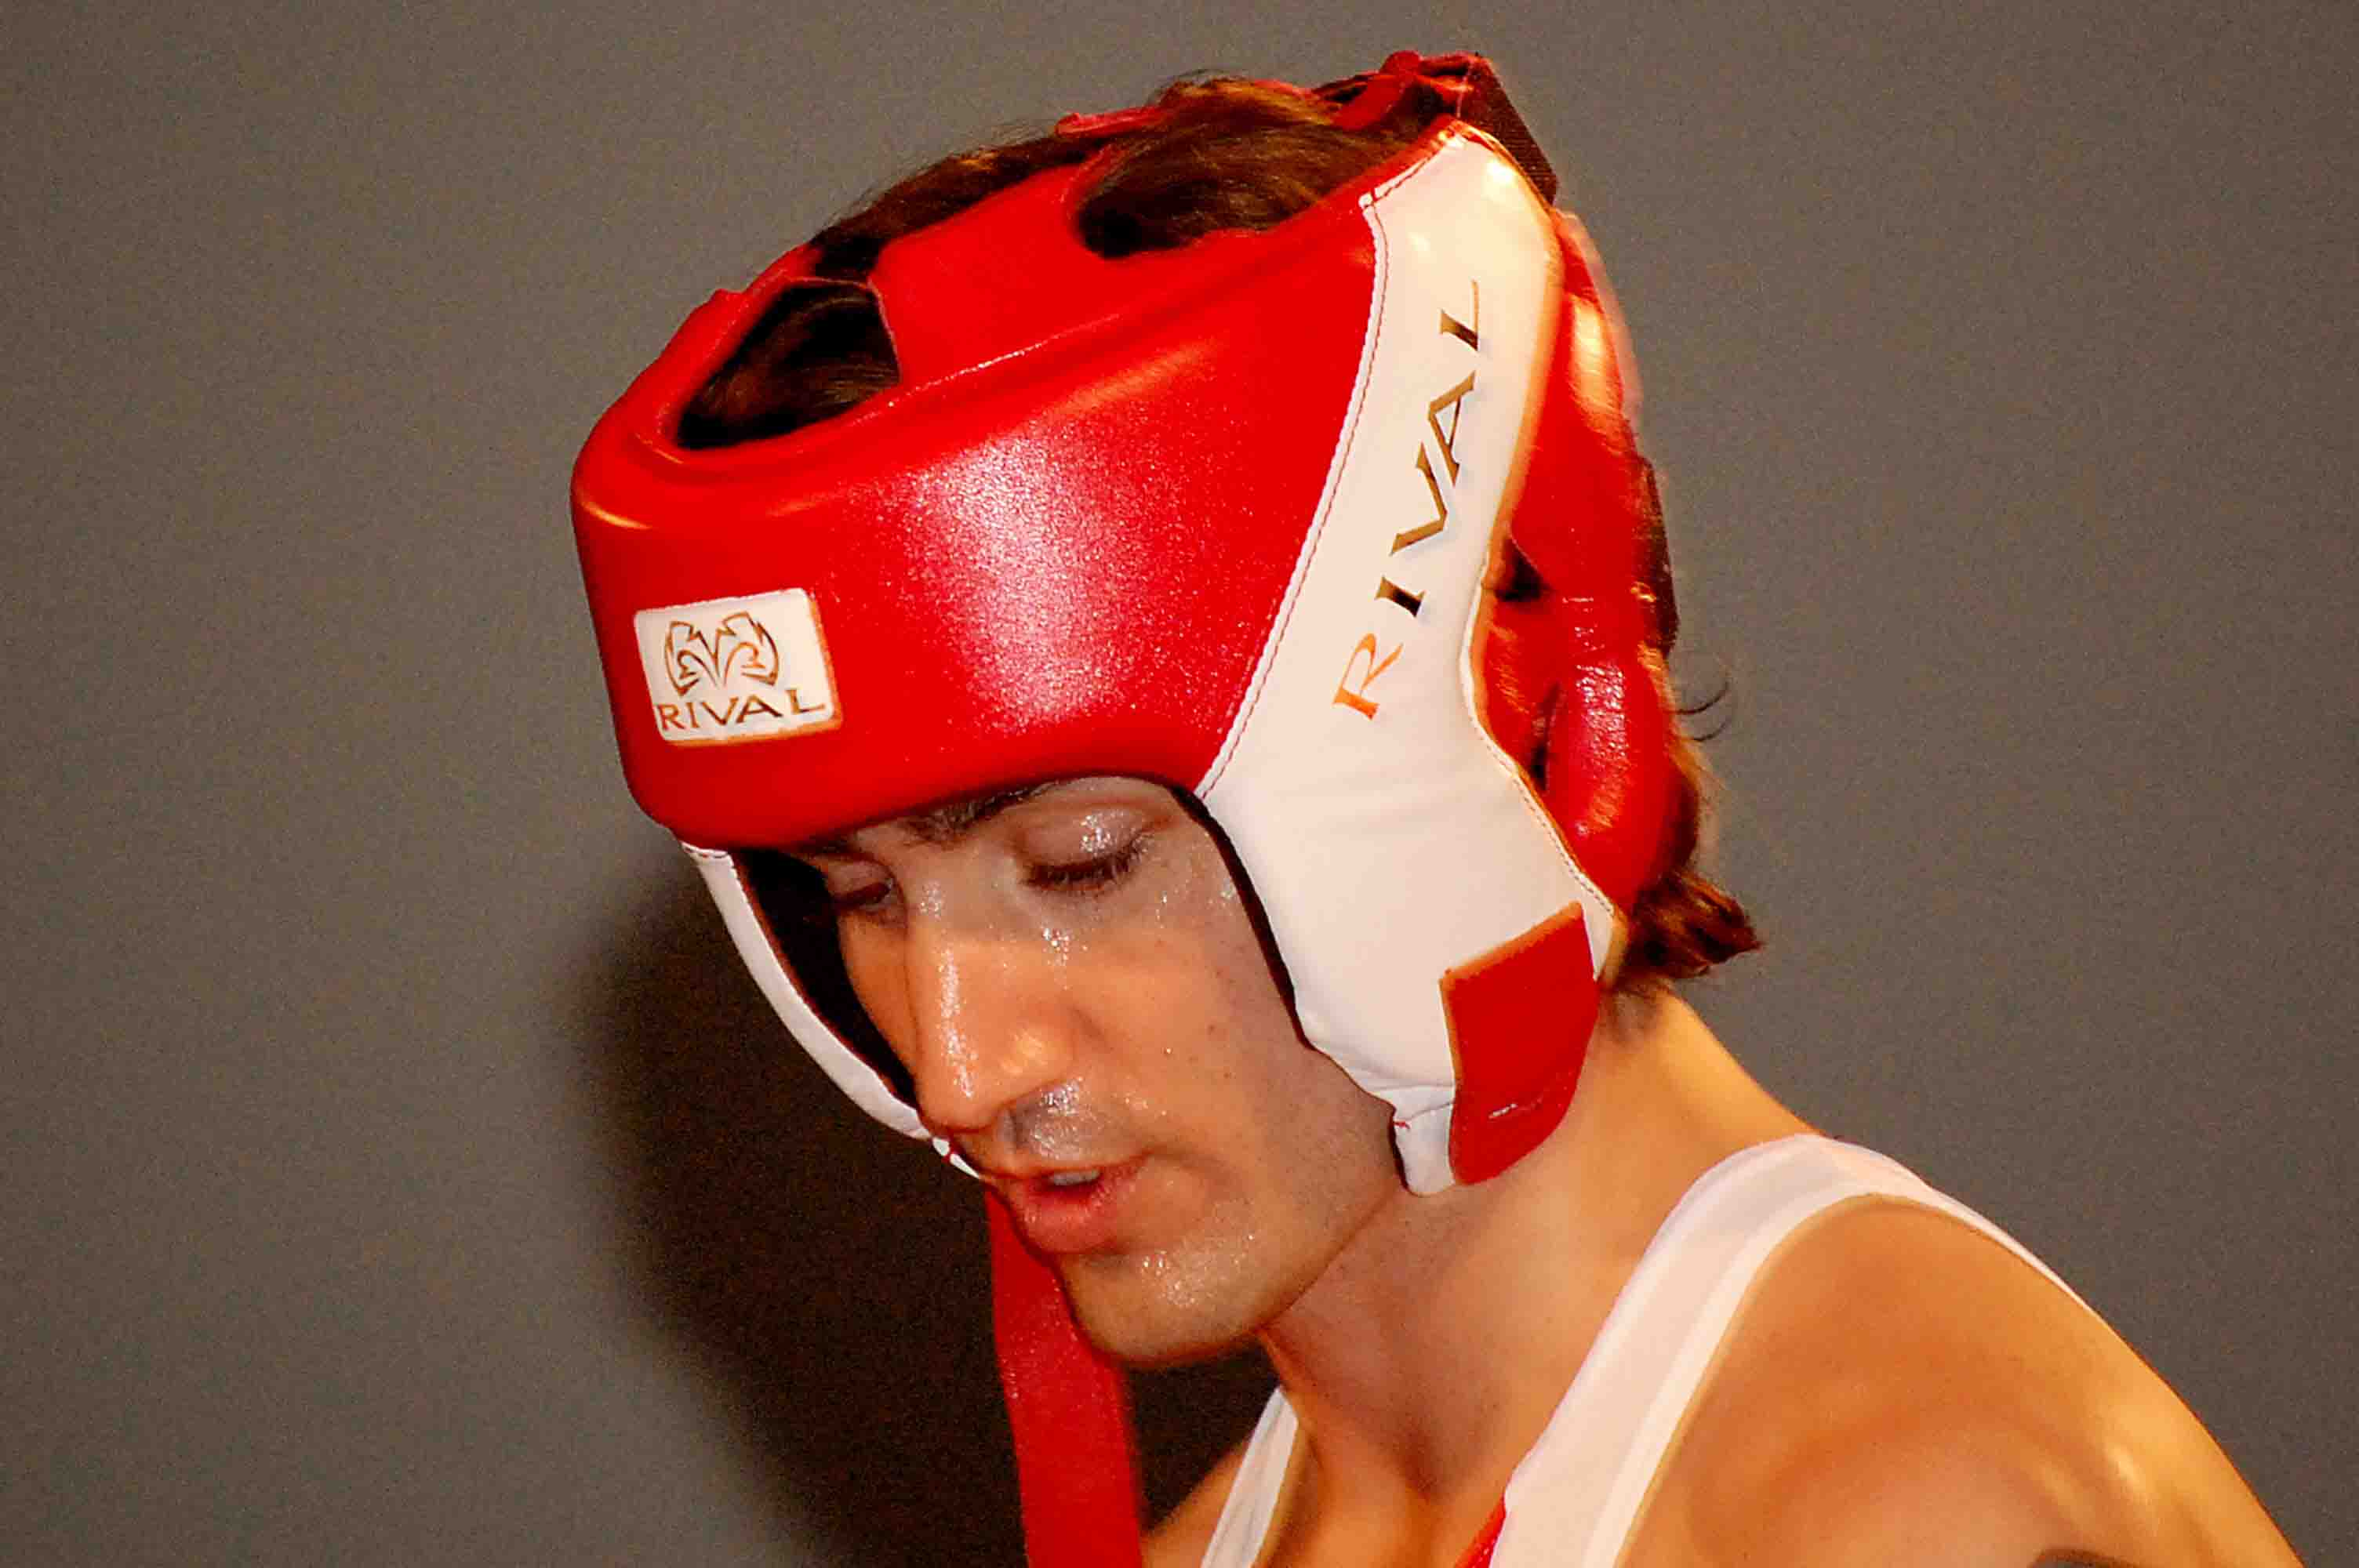 Ottawa photographer Ashley Cottee captured this image of Justin Trudeau during a charity boxing match in 2012. Photo courtesy of Ashley Cottee Photography.